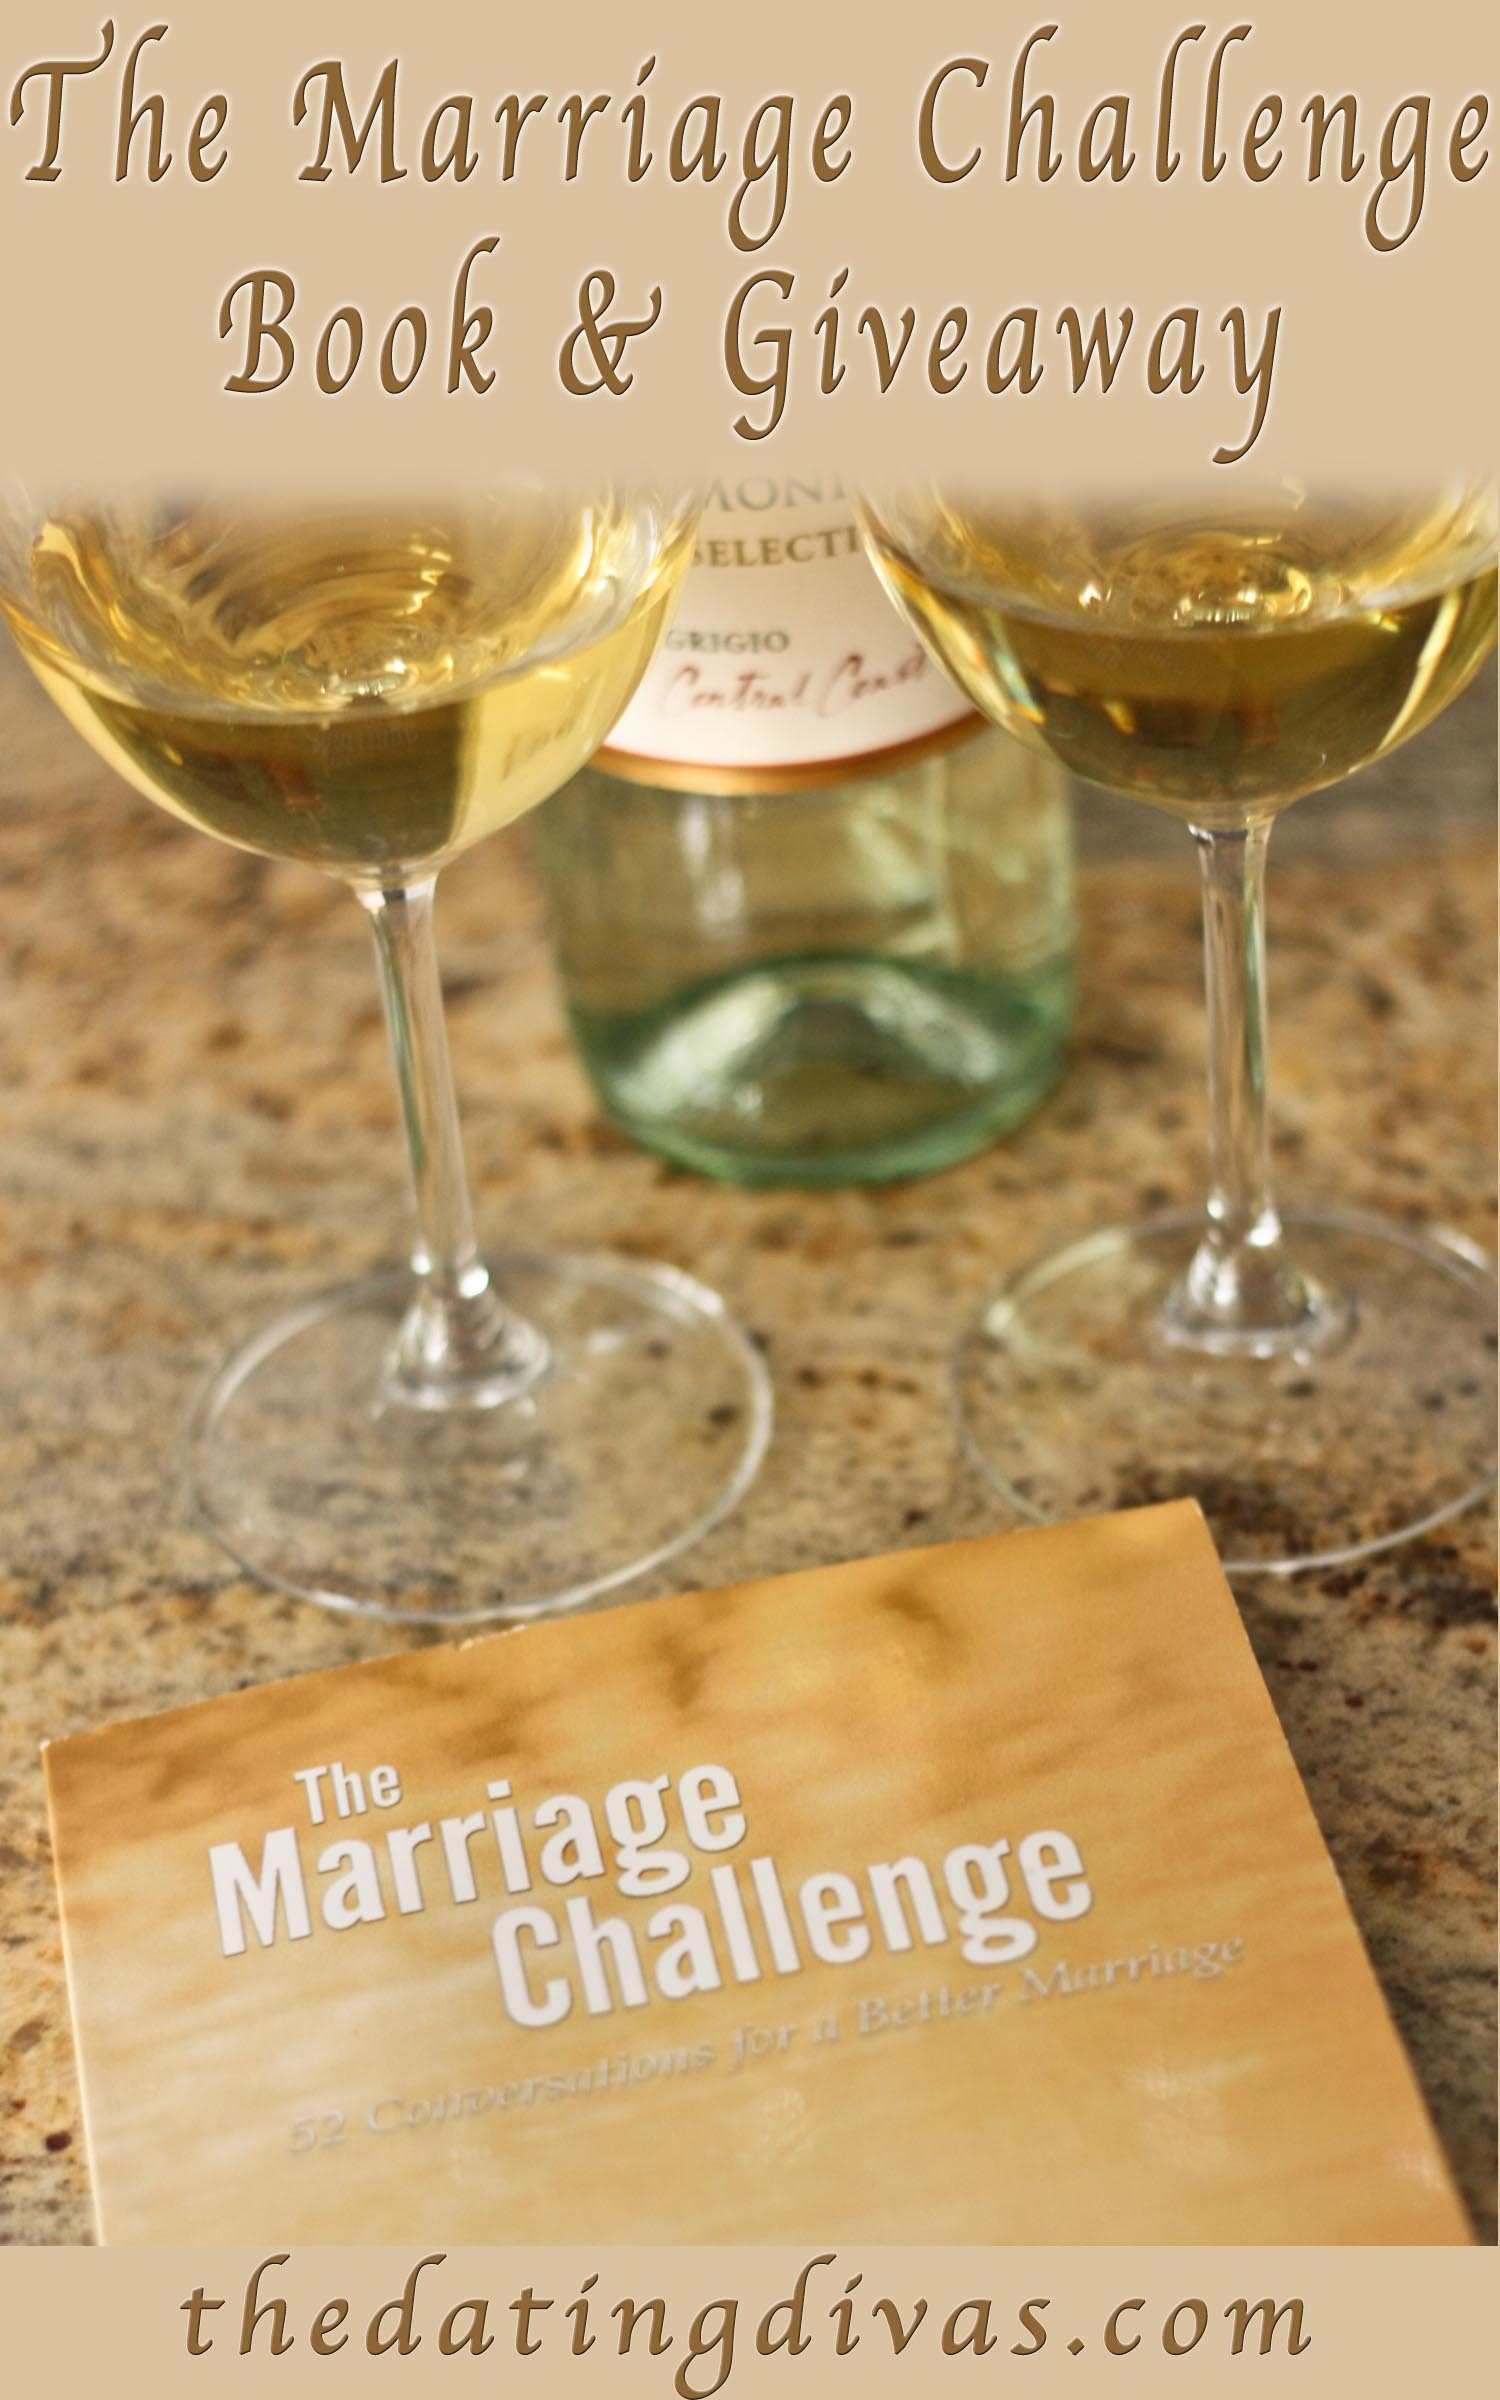 MarriageChallengeBook